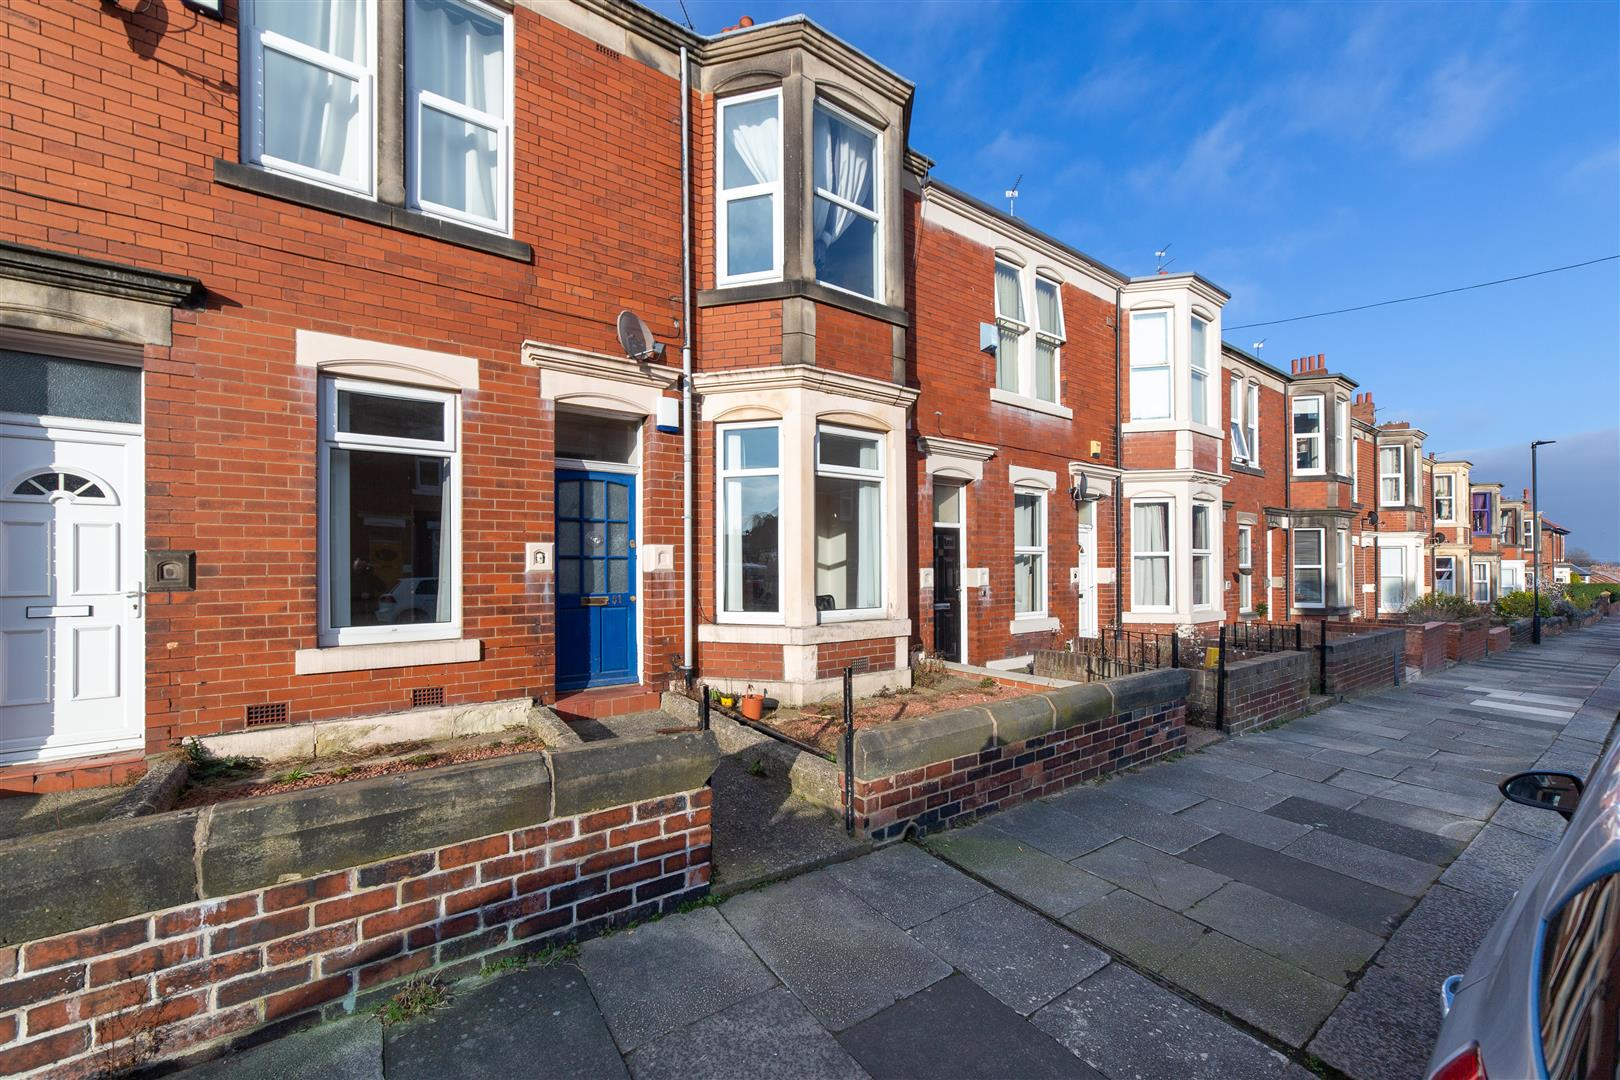 3 bed flat for sale in Heaton, NE6 5TA, NE6